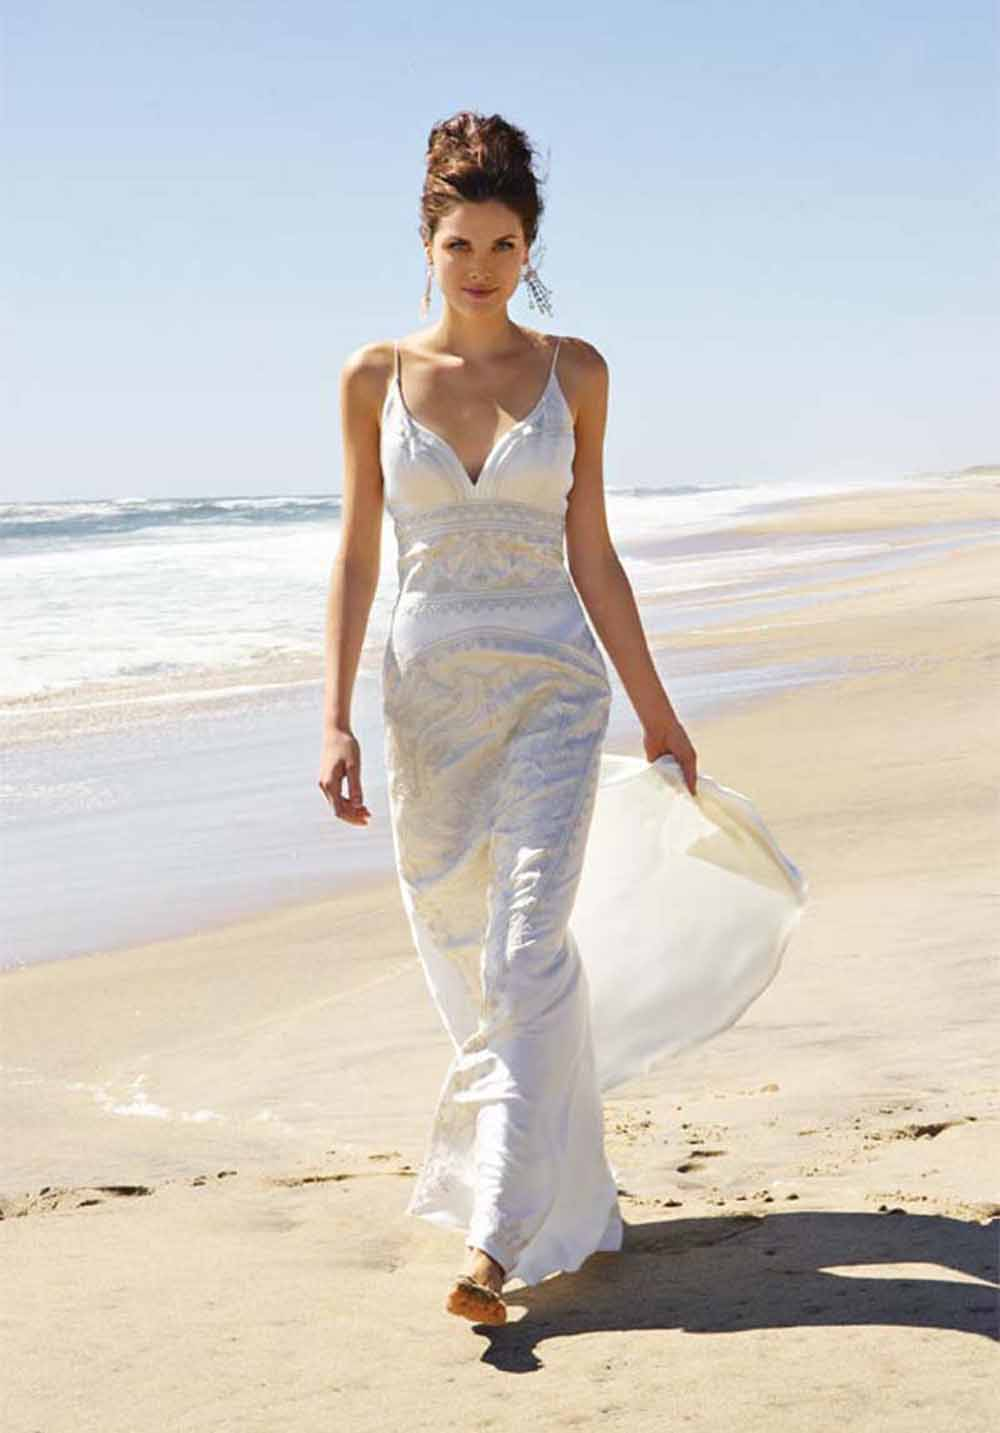 Beach Bridal Dresses 2015, Cheap Beach Wedding Dresses Under 100, Summer Dresses for Beach, Casual Bridal Dresses, White Beach Dresses for Vacation, Elegant Dresses for a Wedding, Casual Beach Wedding Guest Dresses, Casual Bridesmaid Dresses for Outdoor Wedding